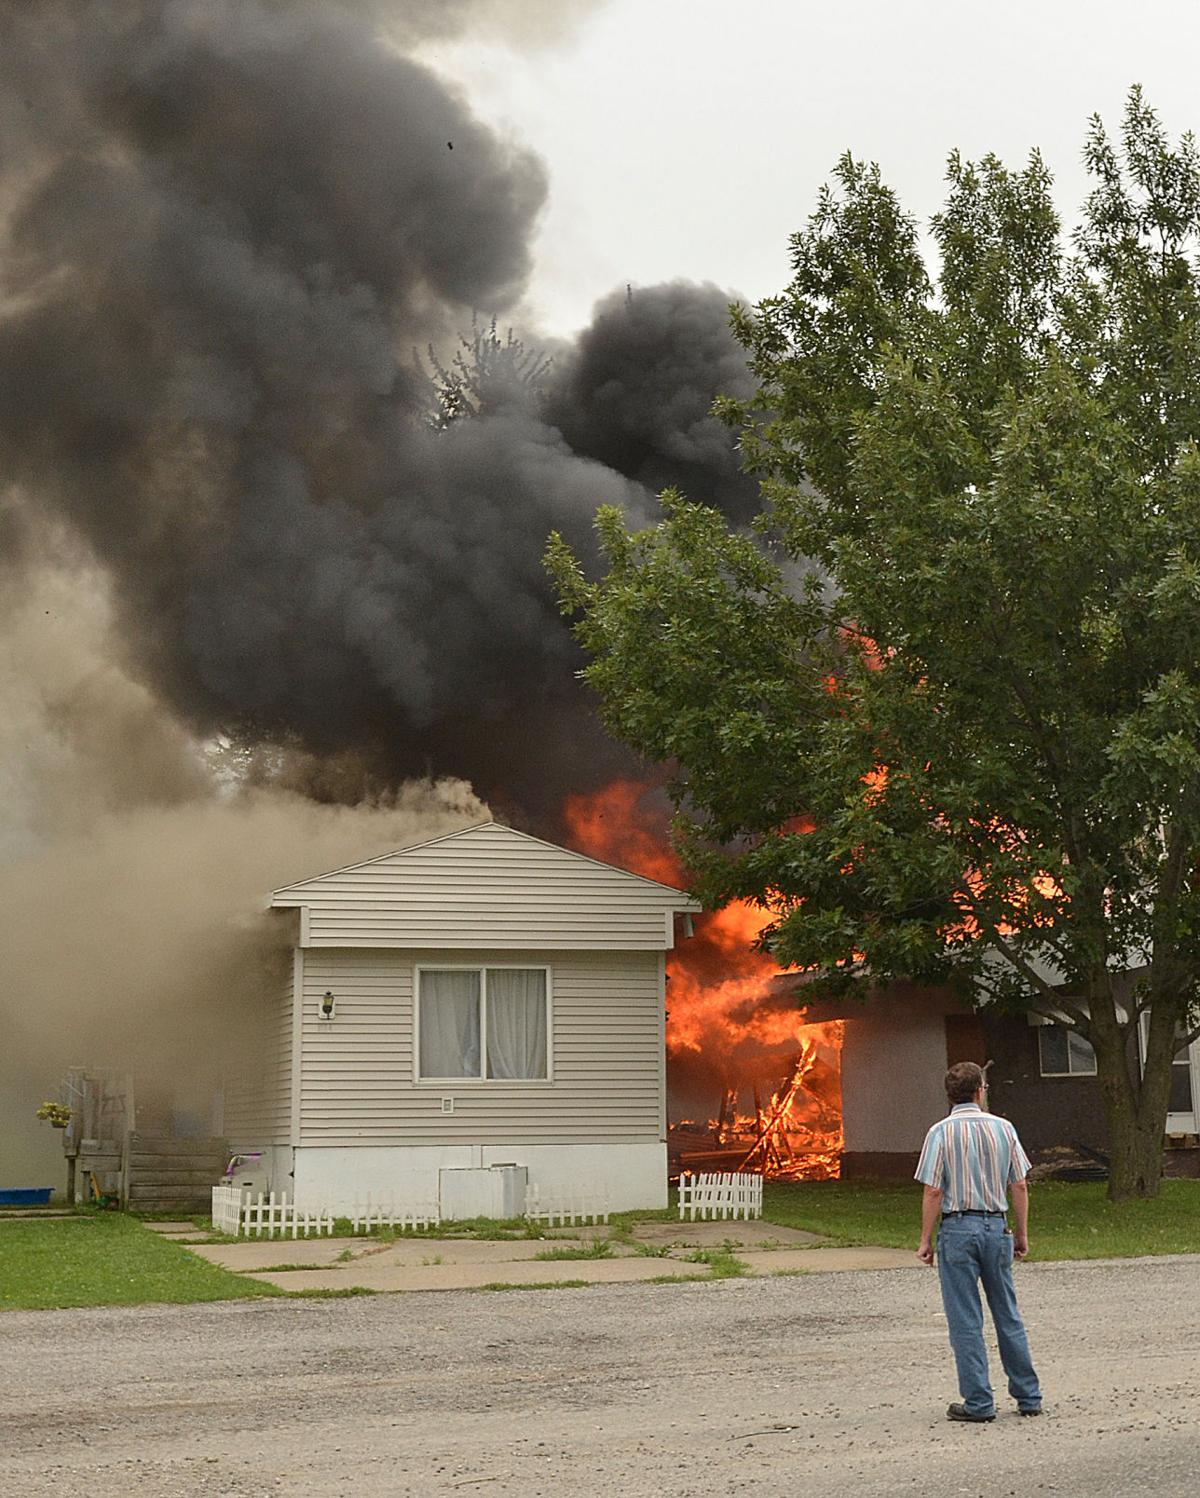 Fire Tears Through Homes In M&W Mobile Home Park